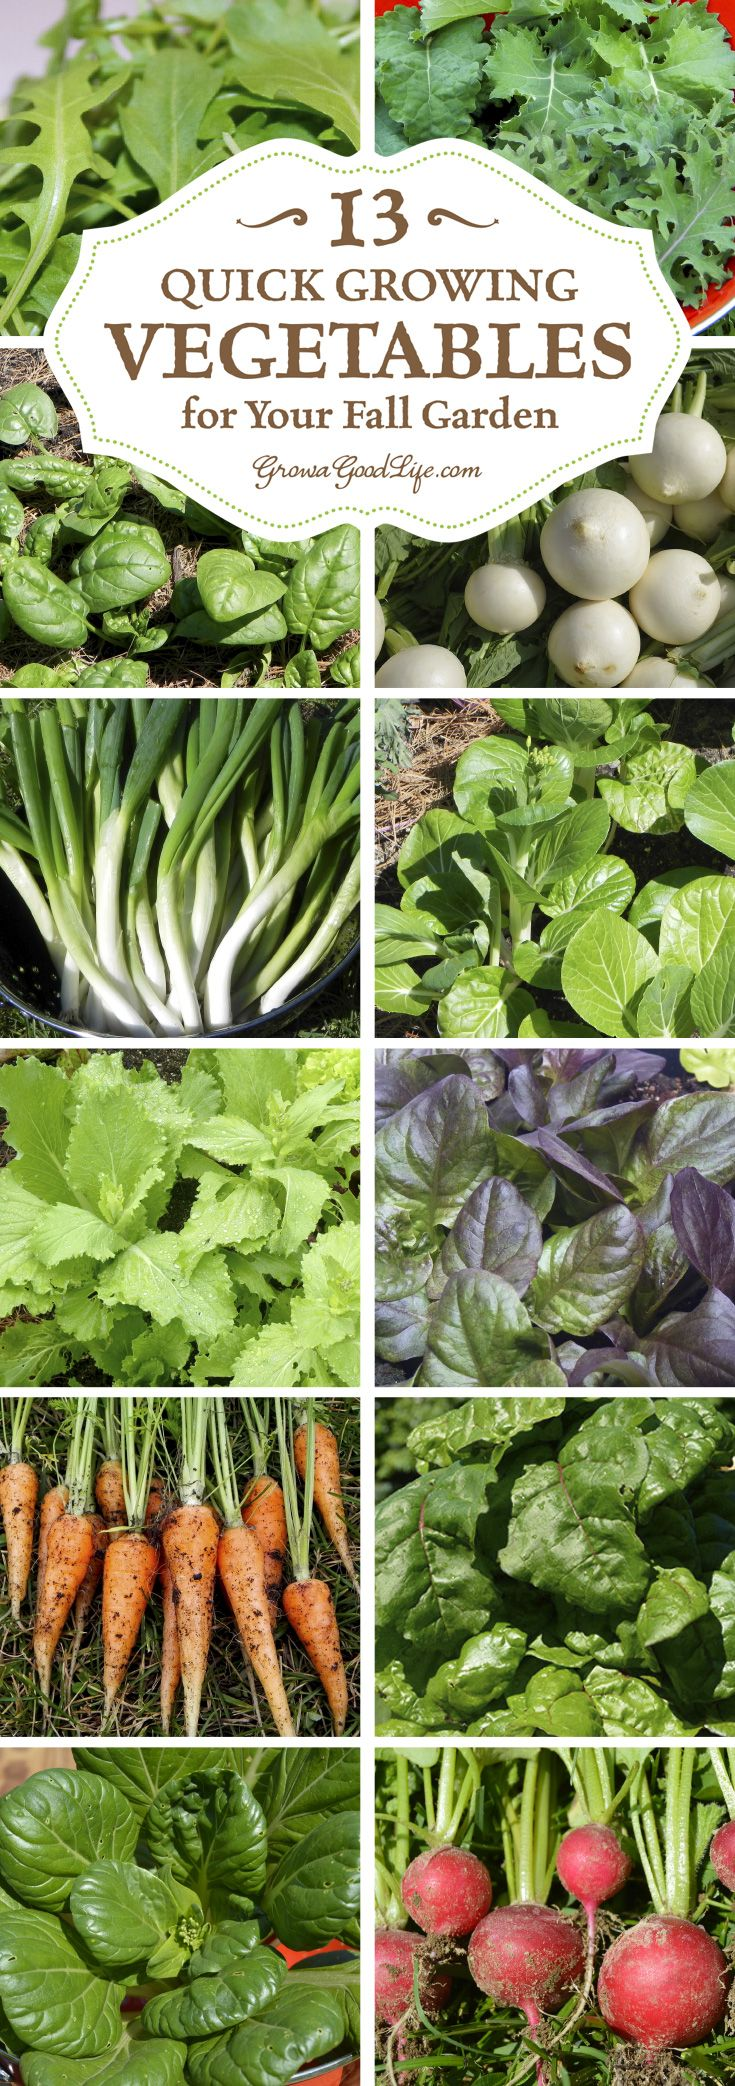 Growing fall vegetables in colder climates can be a gamble, but these crops matu...